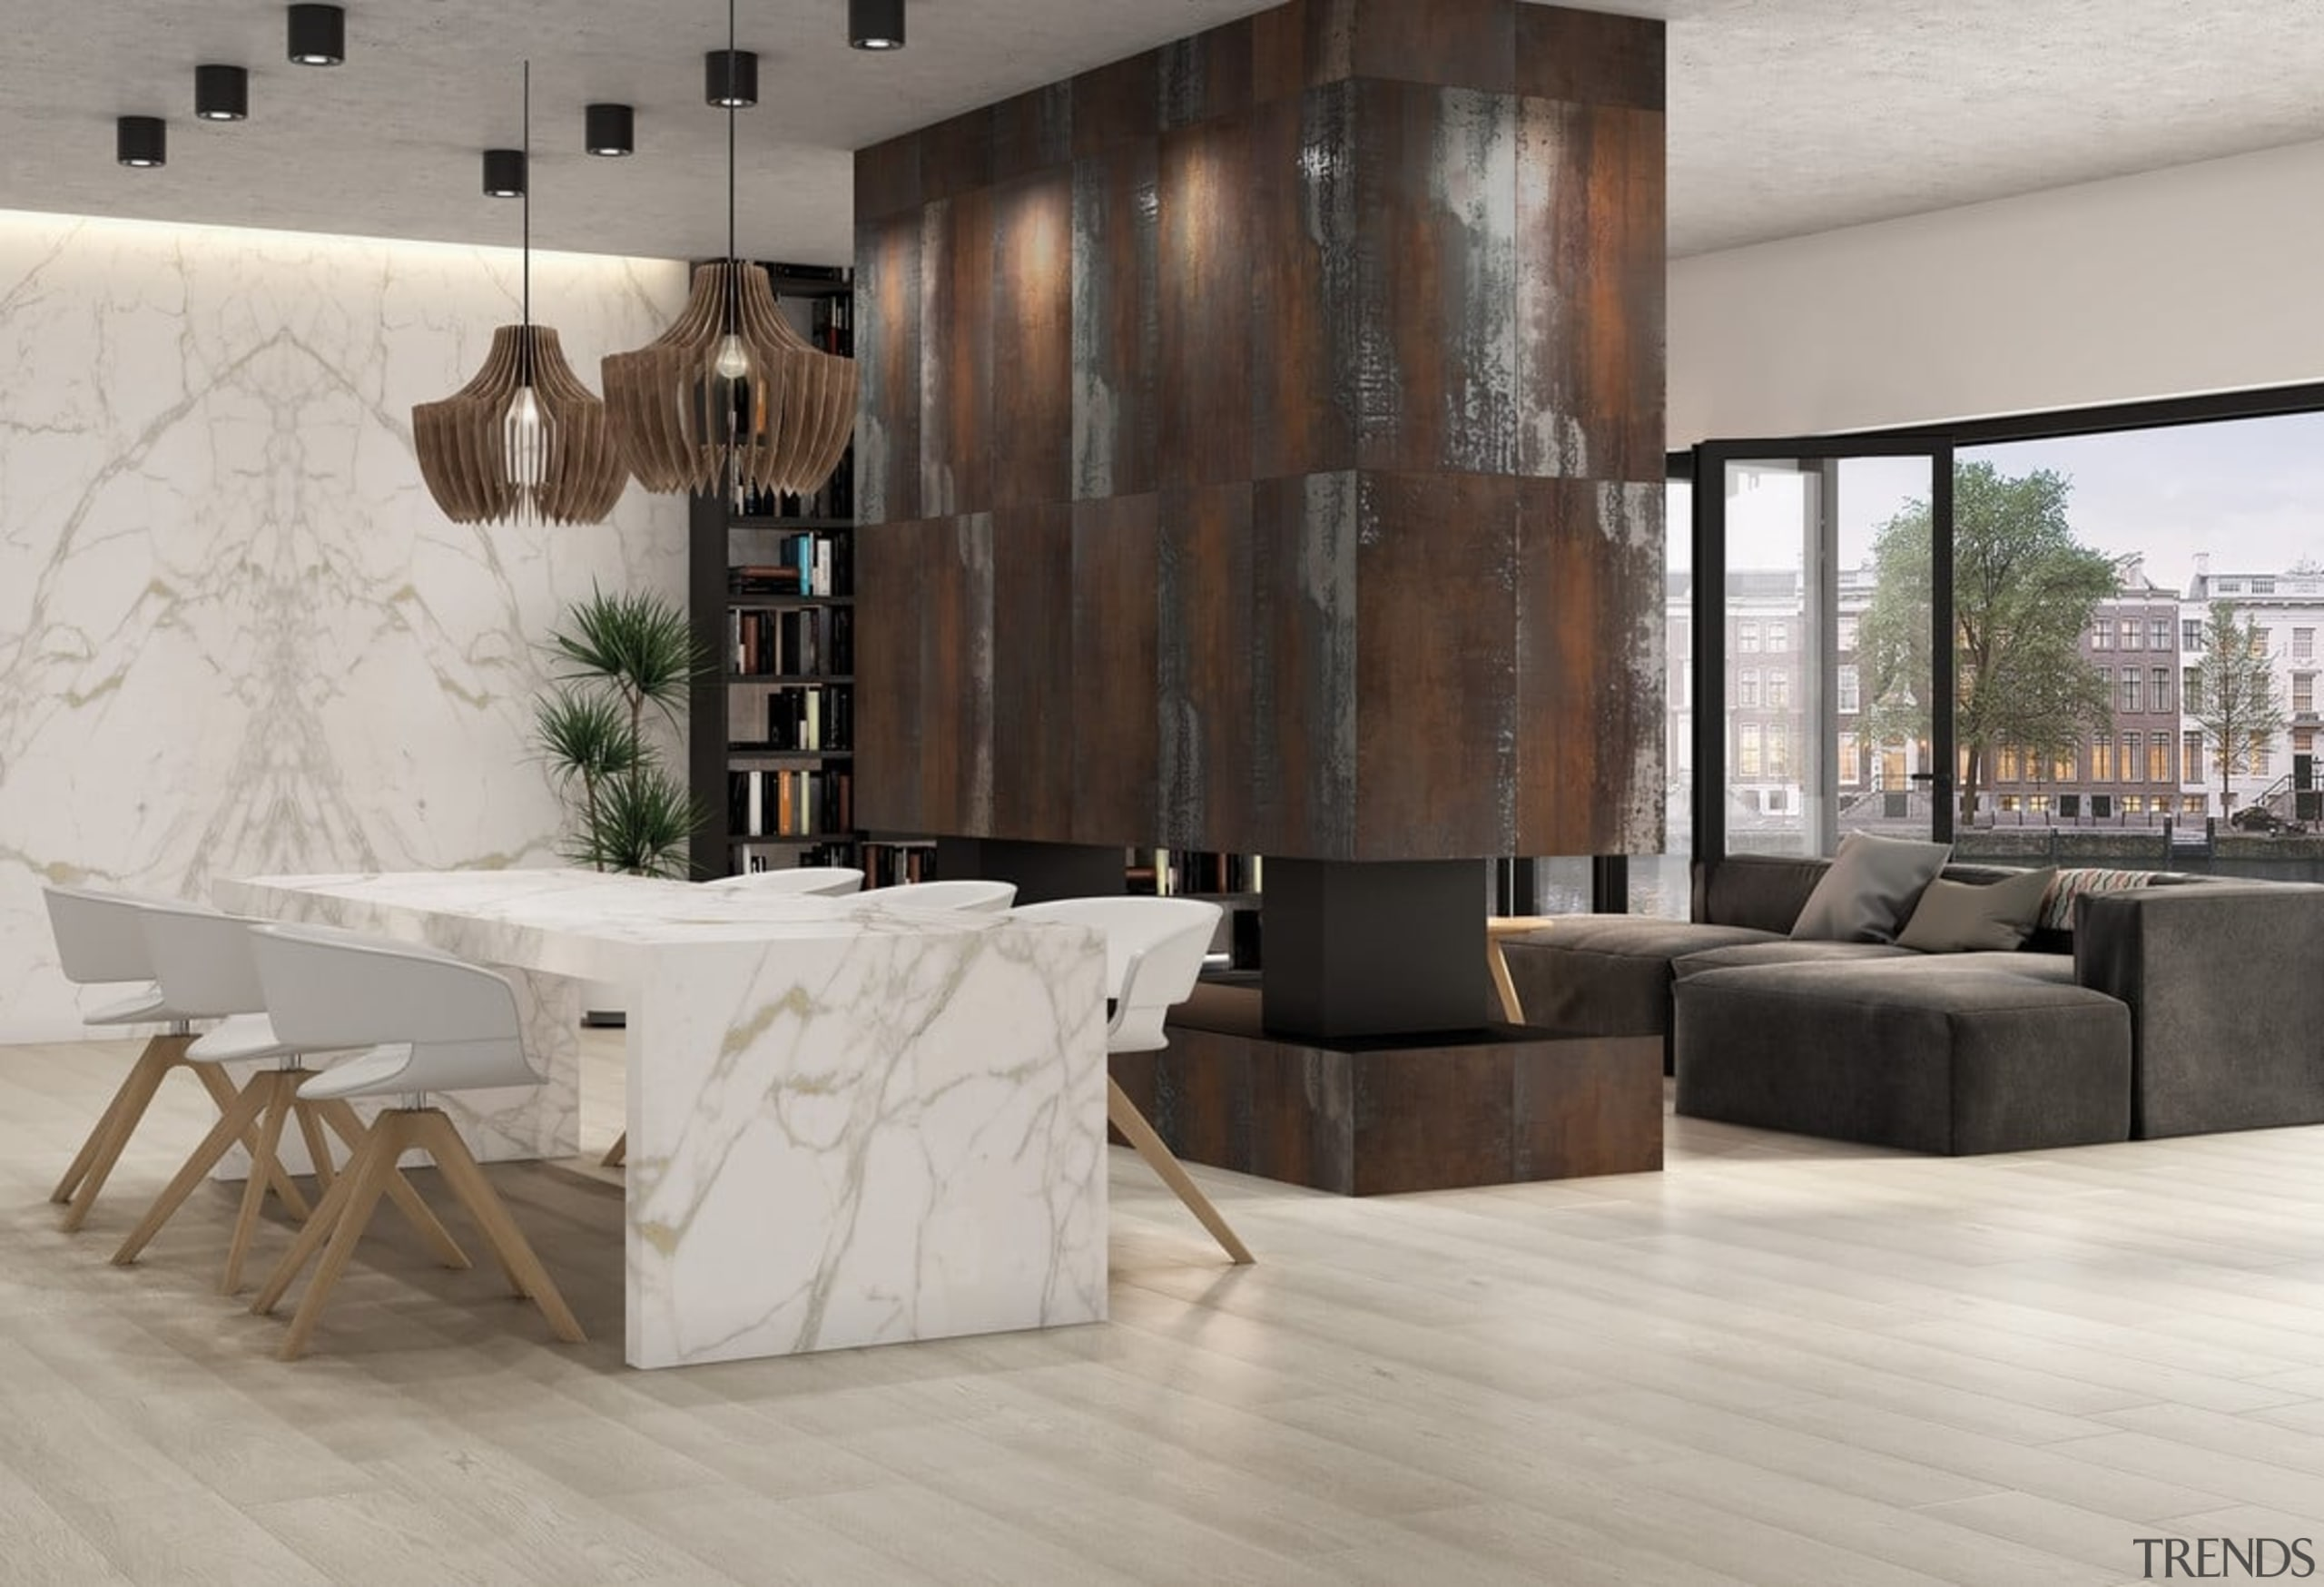 Universal Granite And Marbles Showroom 2 Trends